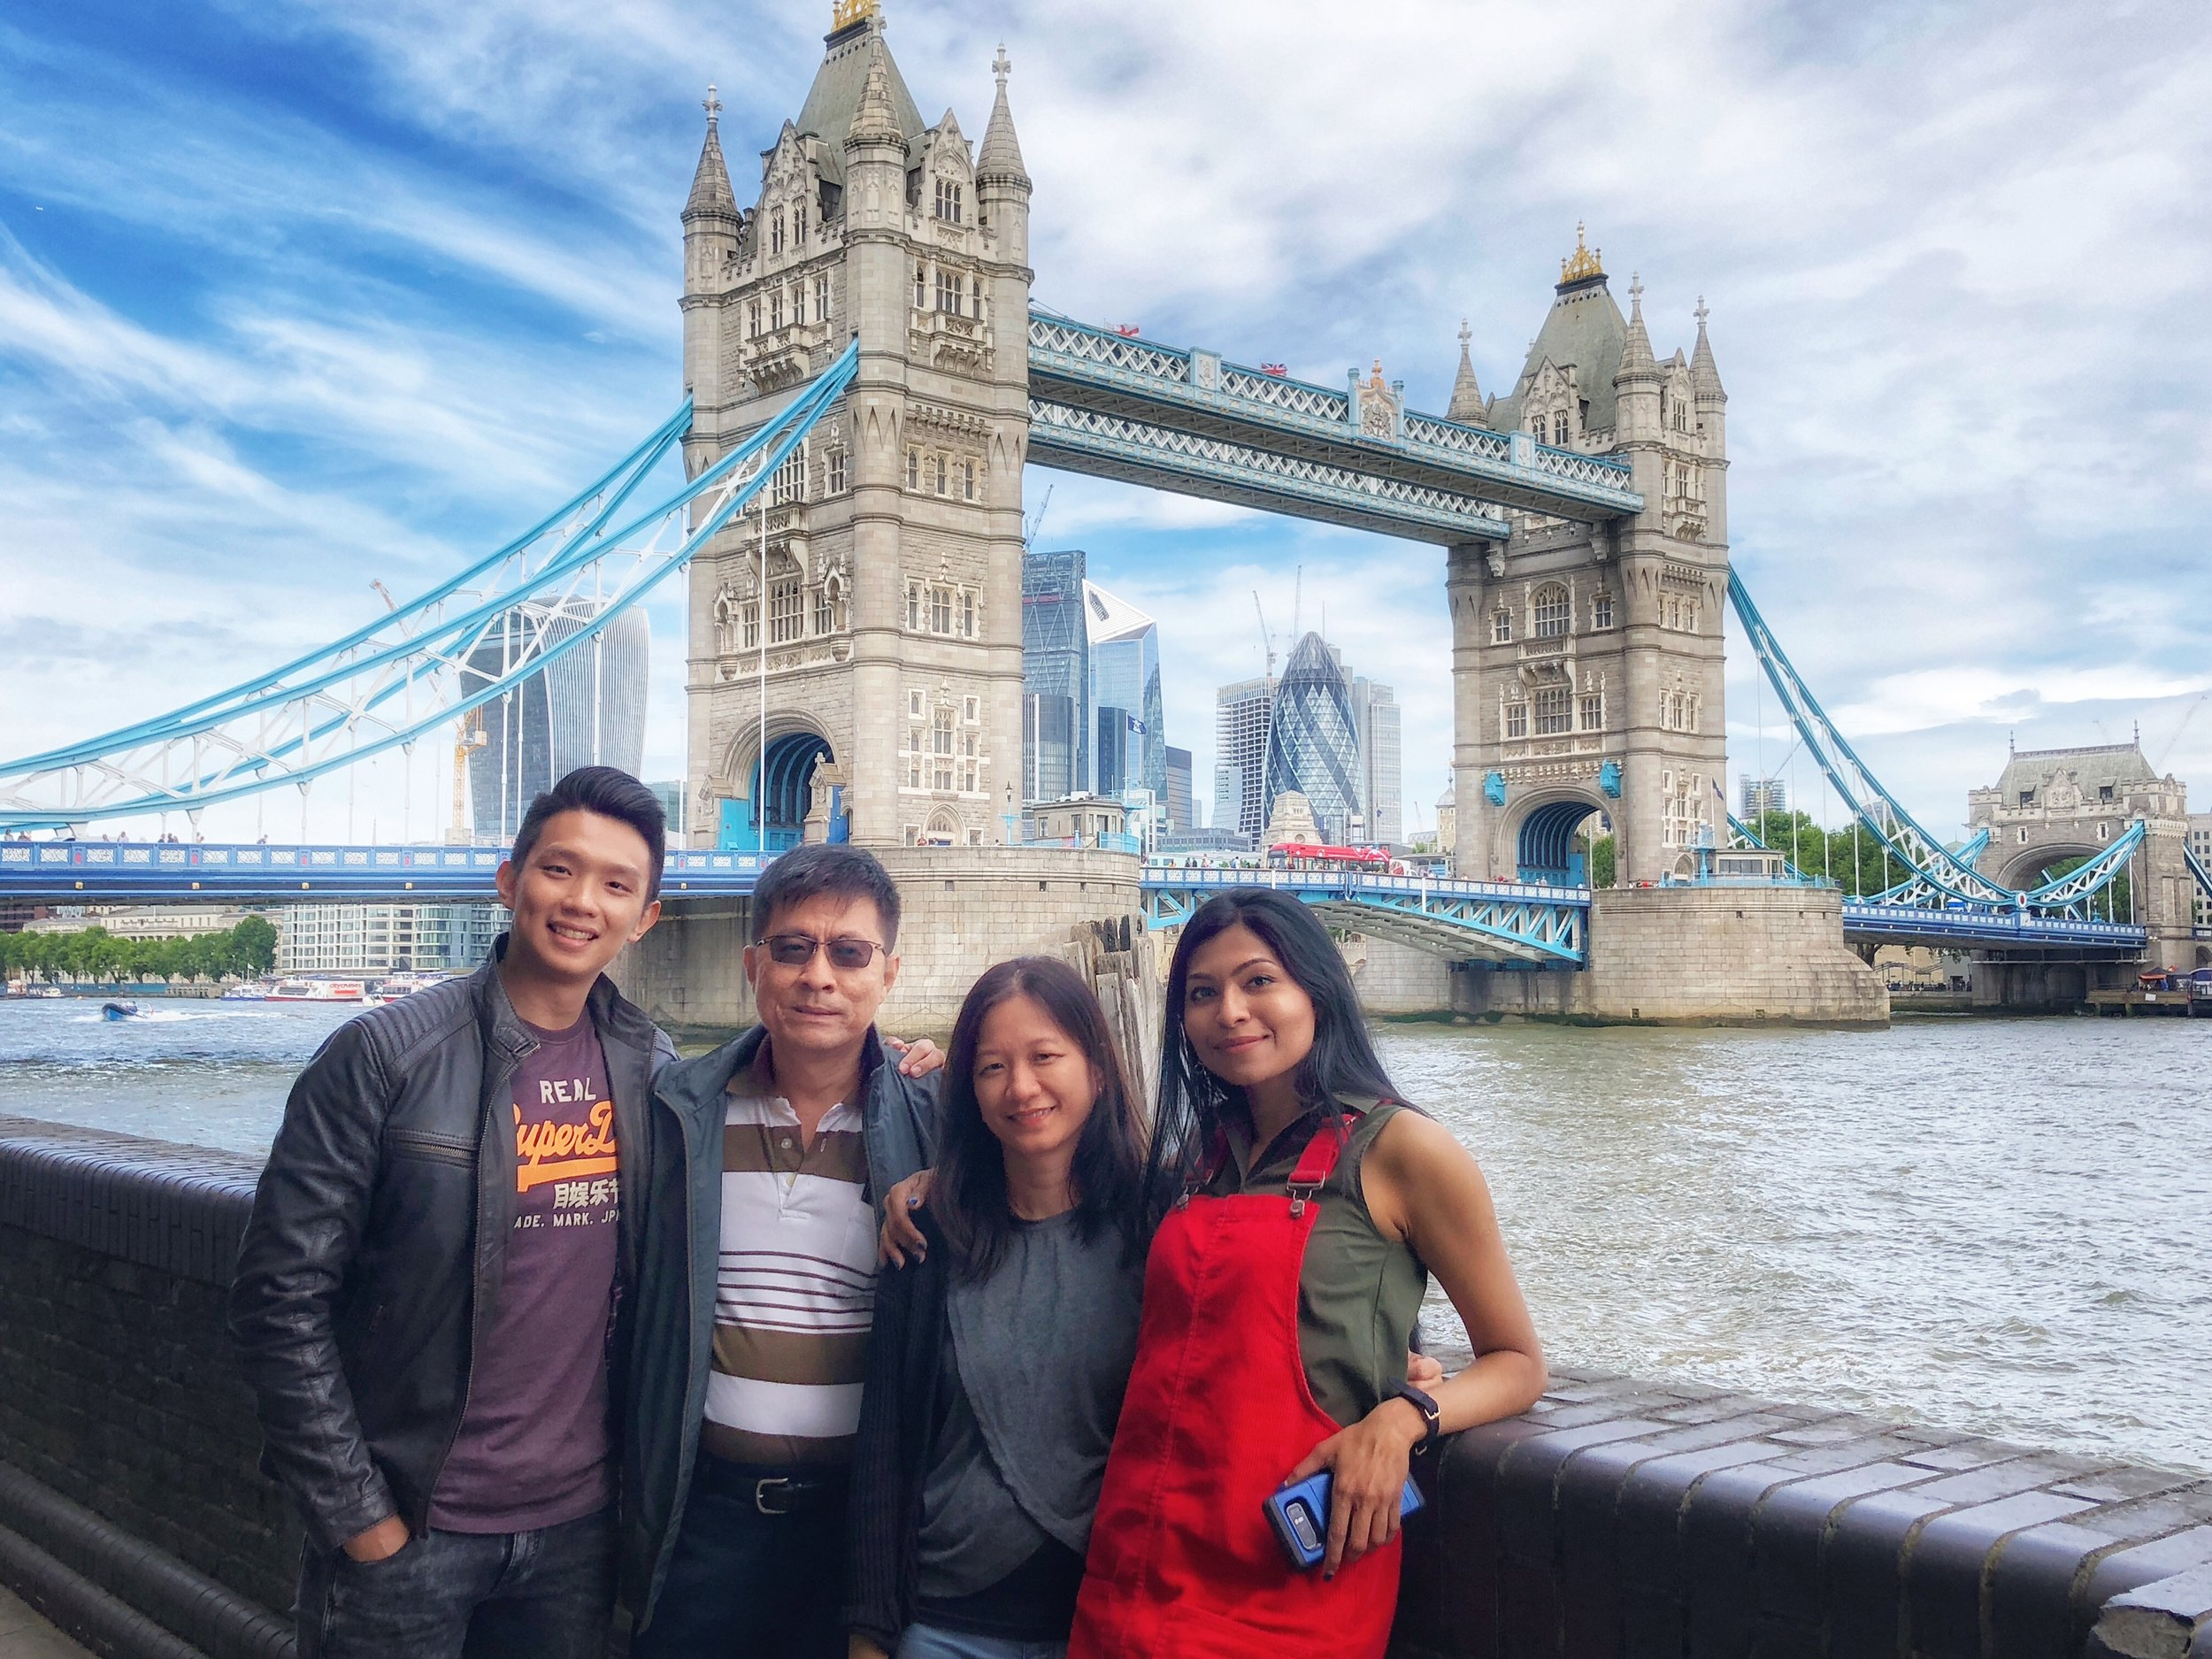 ICLS 2018 - The International Conference of Learning Sciences 2018 | London, U.K.